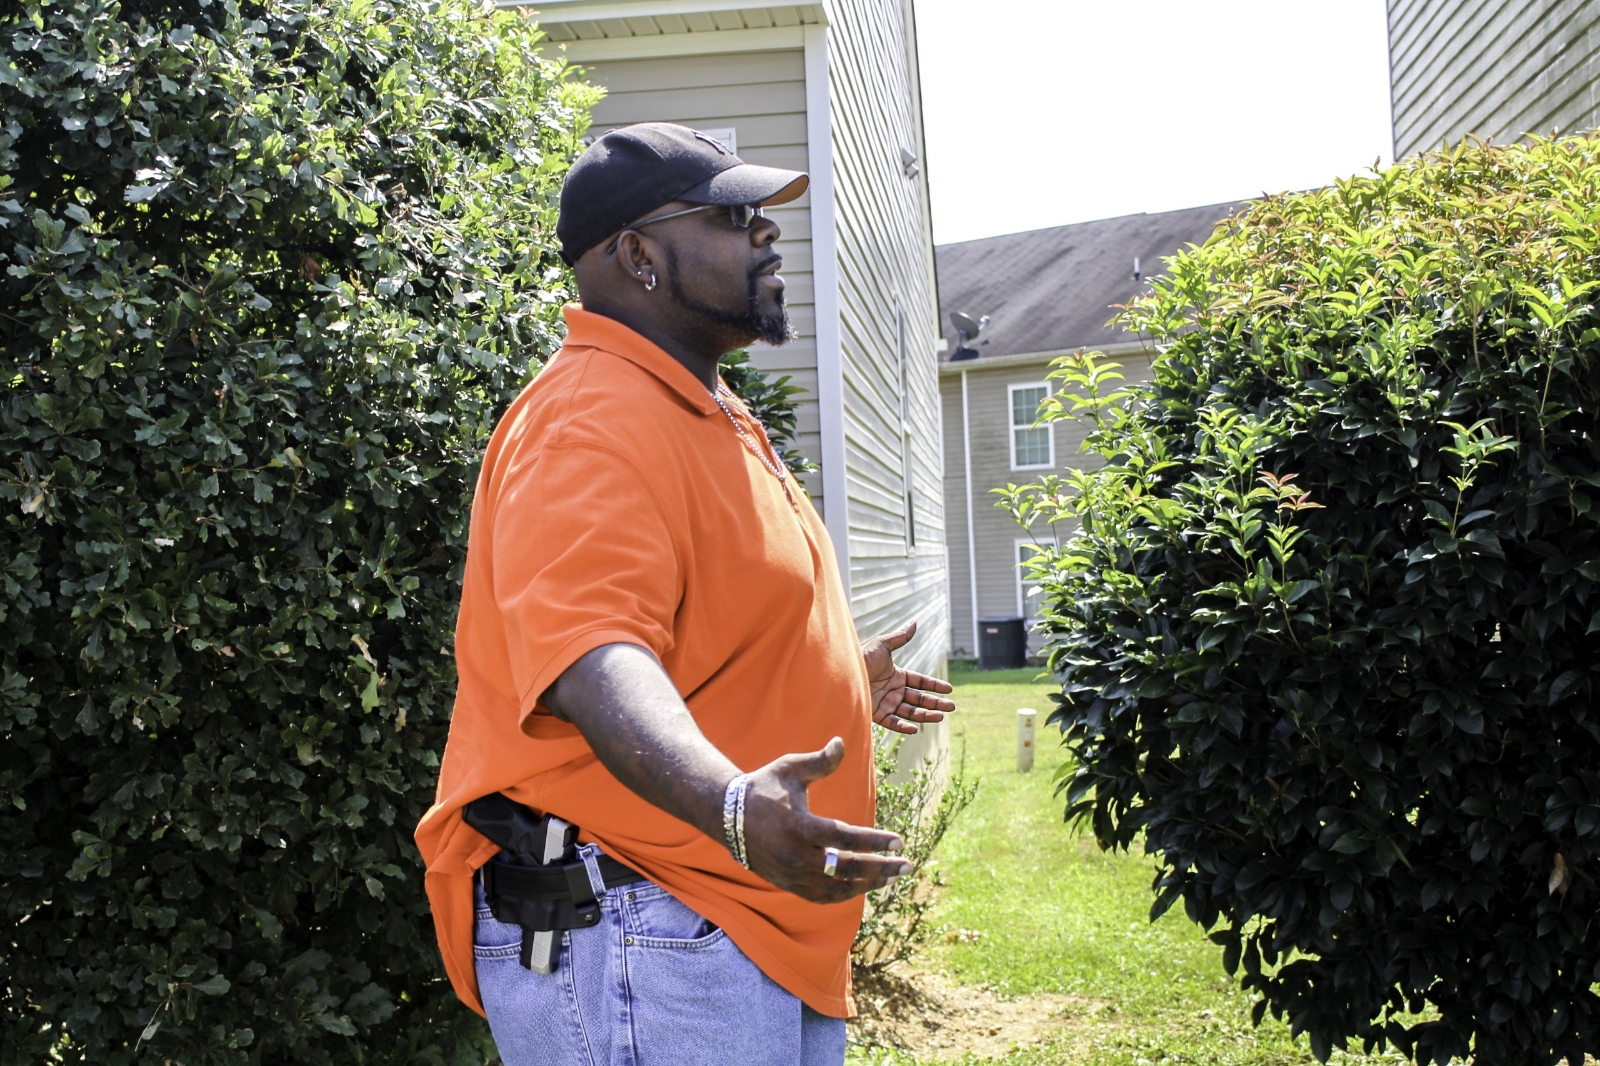 Luther Thompson, 41, poses with his firearm outside his Cartersville, Ga. home.